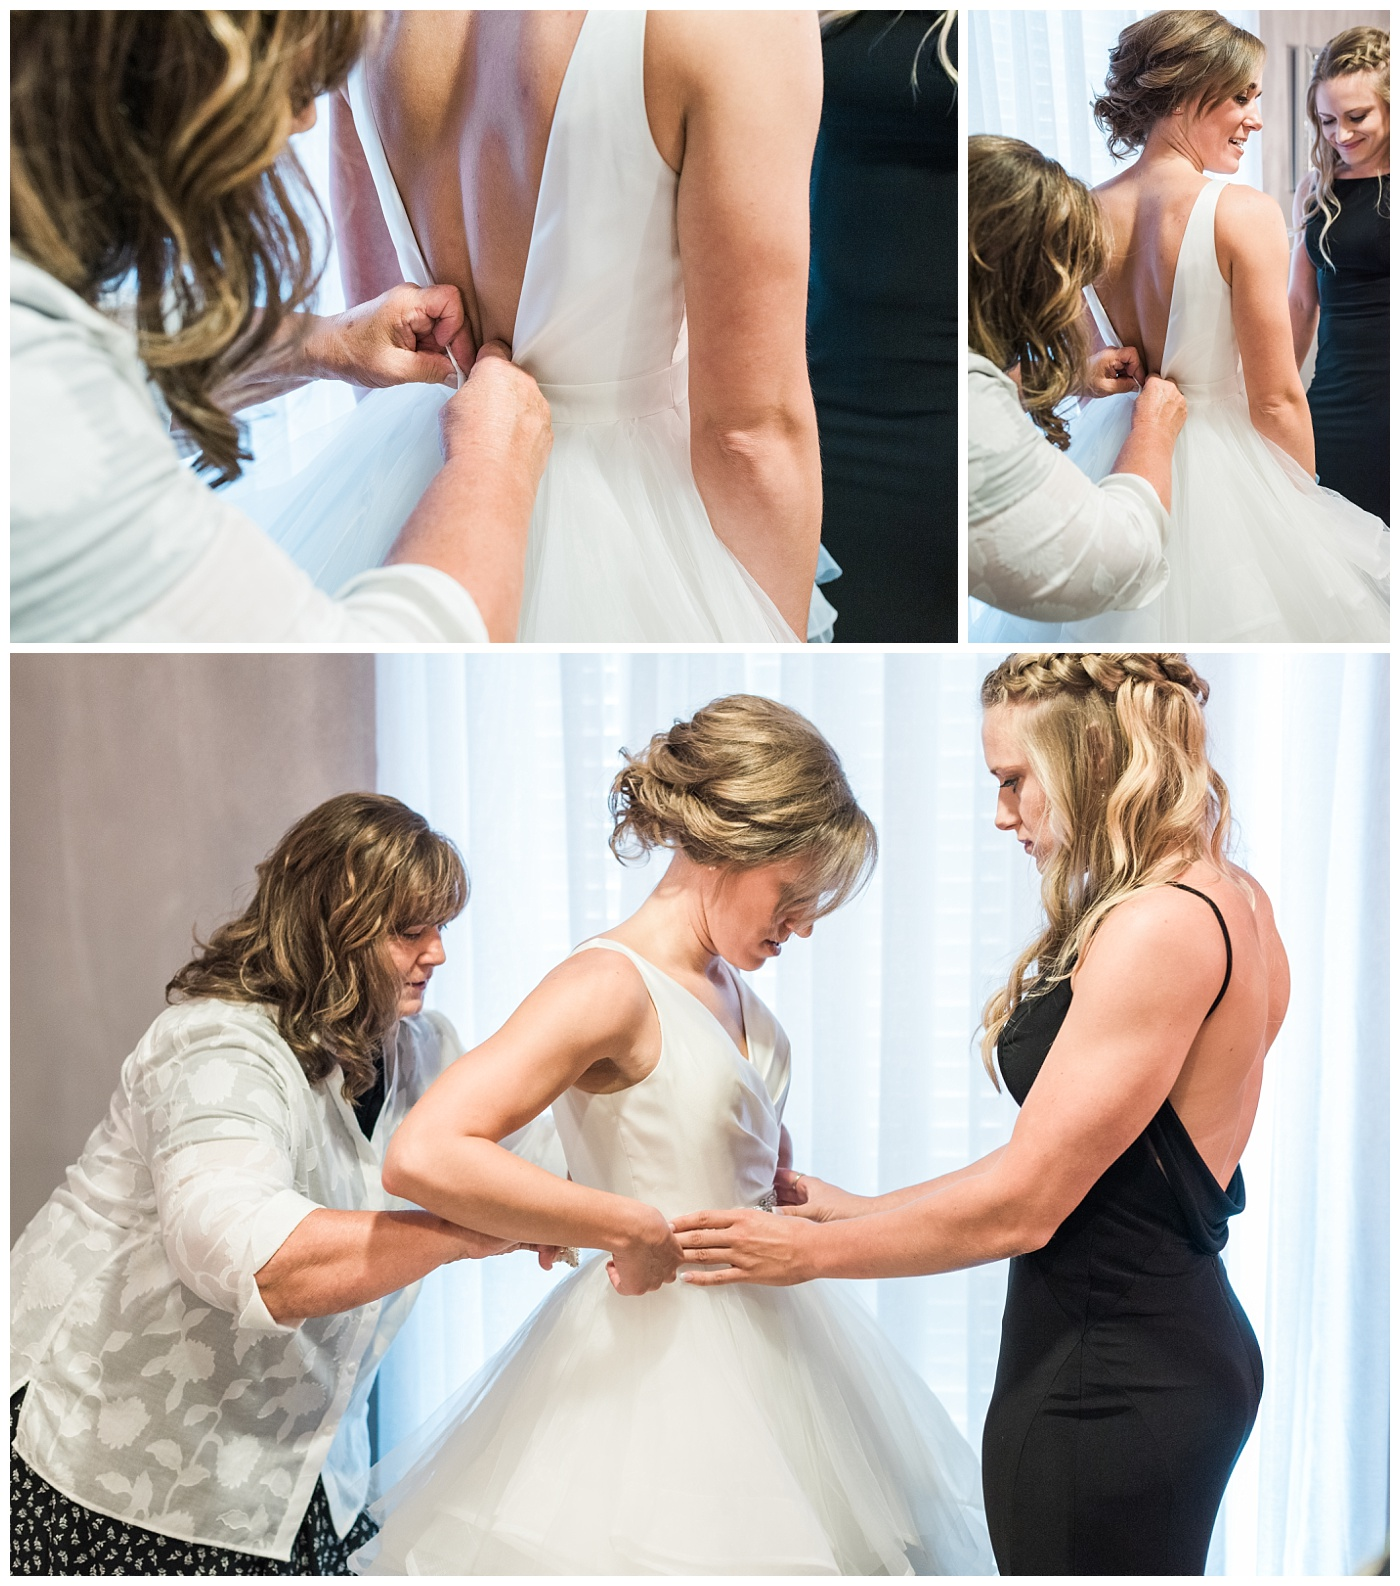 Stephanie Marie Photography Newman Catholic Center Ceremony Bella Sala Reception Tiffin Iowa City Wedding Photographer Chelsey Justin Meyers_0004-1.jpg